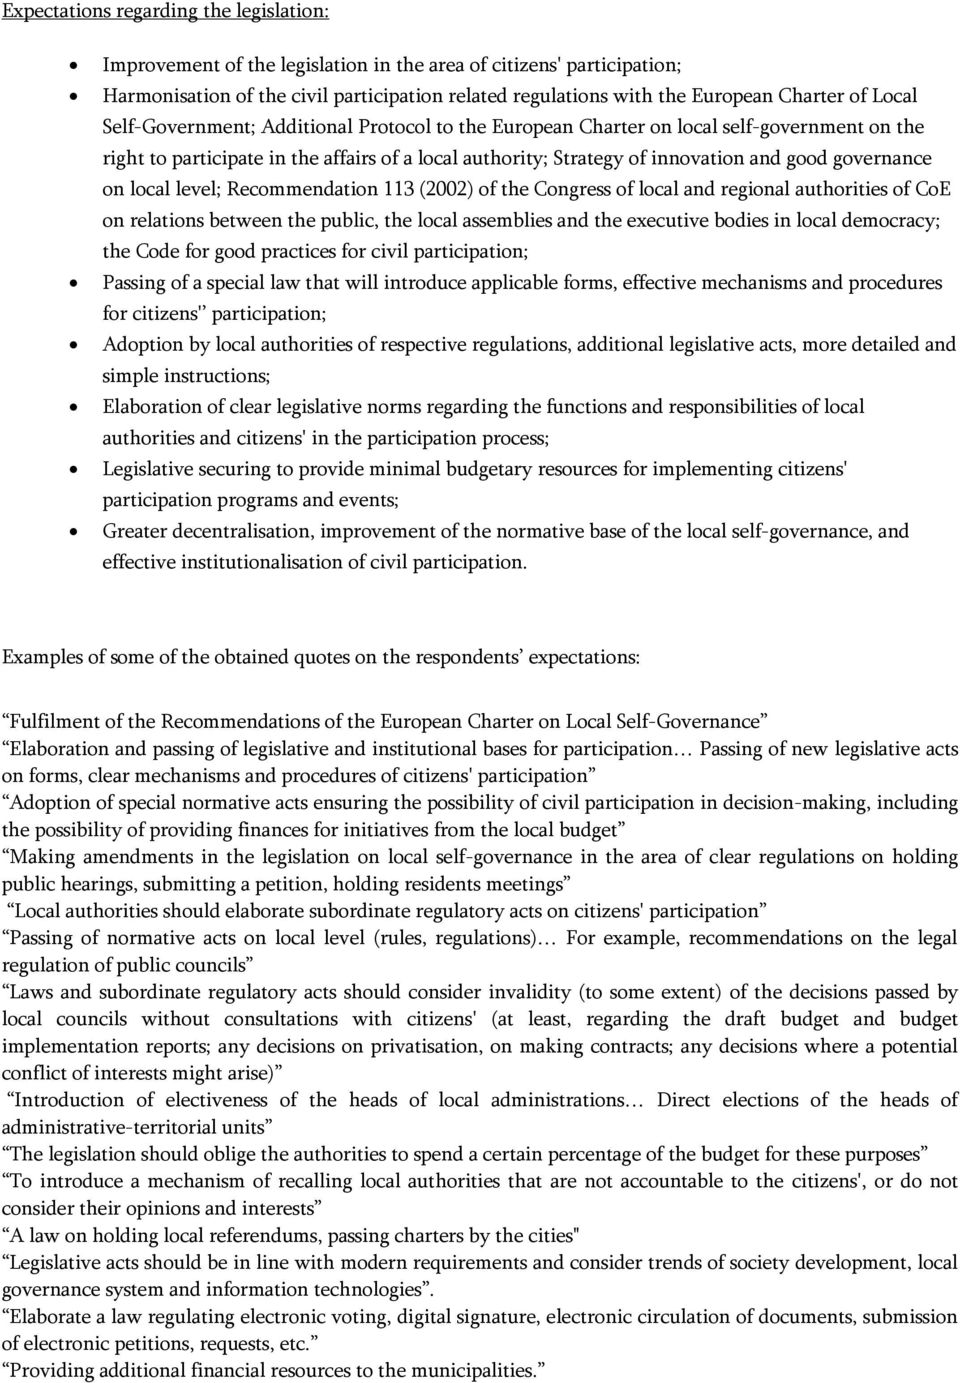 governance on local level; Recommendation 113 (2002) of the Congress of local and regional authorities of CoE on relations between the public, the local assemblies and the executive bodies in local